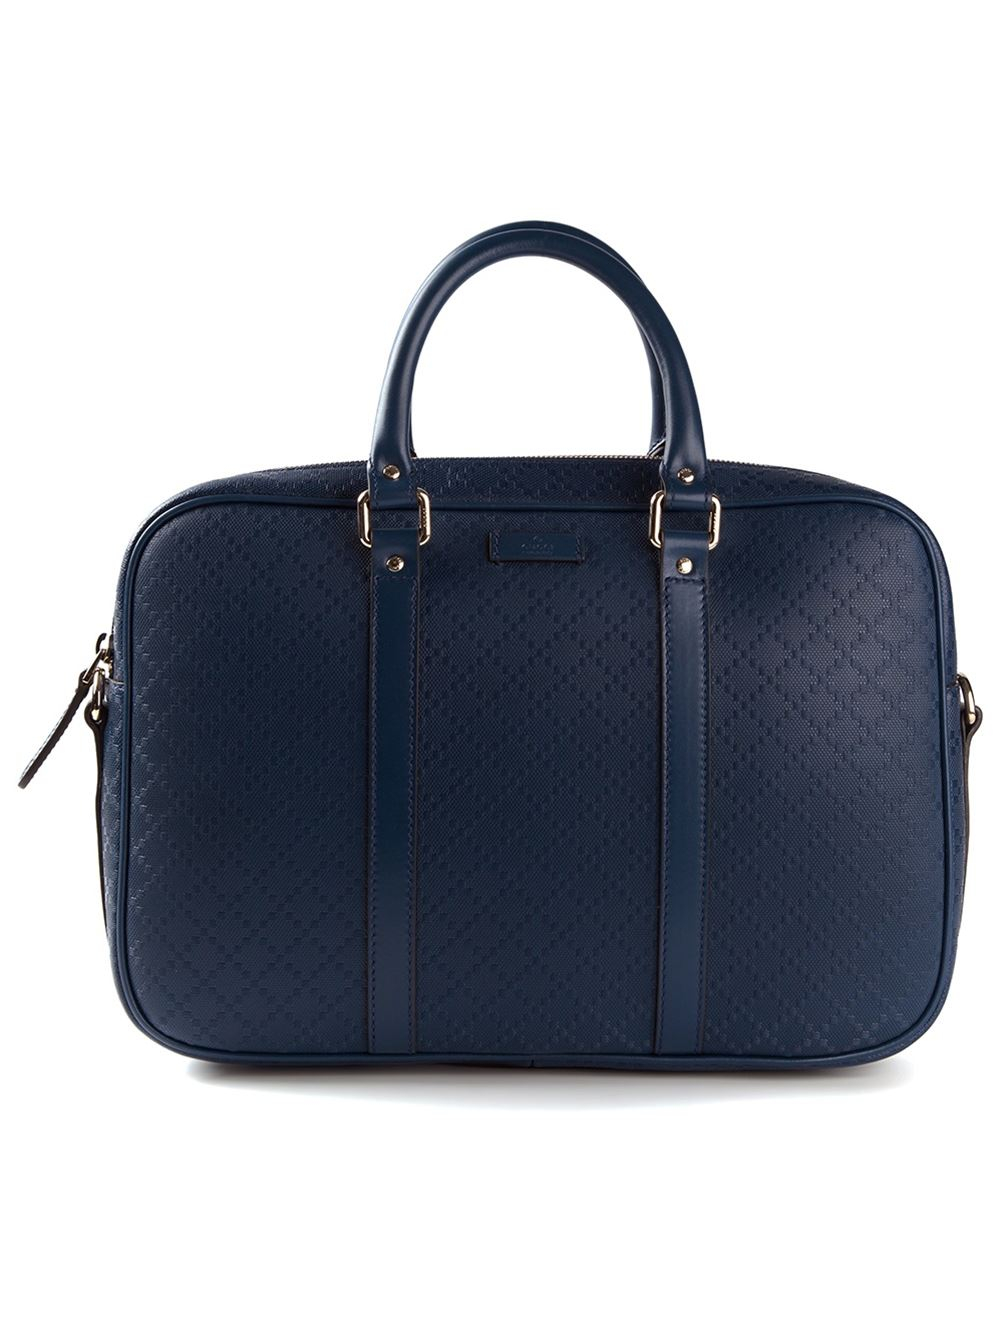 da28e2133f92 Gucci Laptop Bags For Men | Stanford Center for Opportunity Policy ...